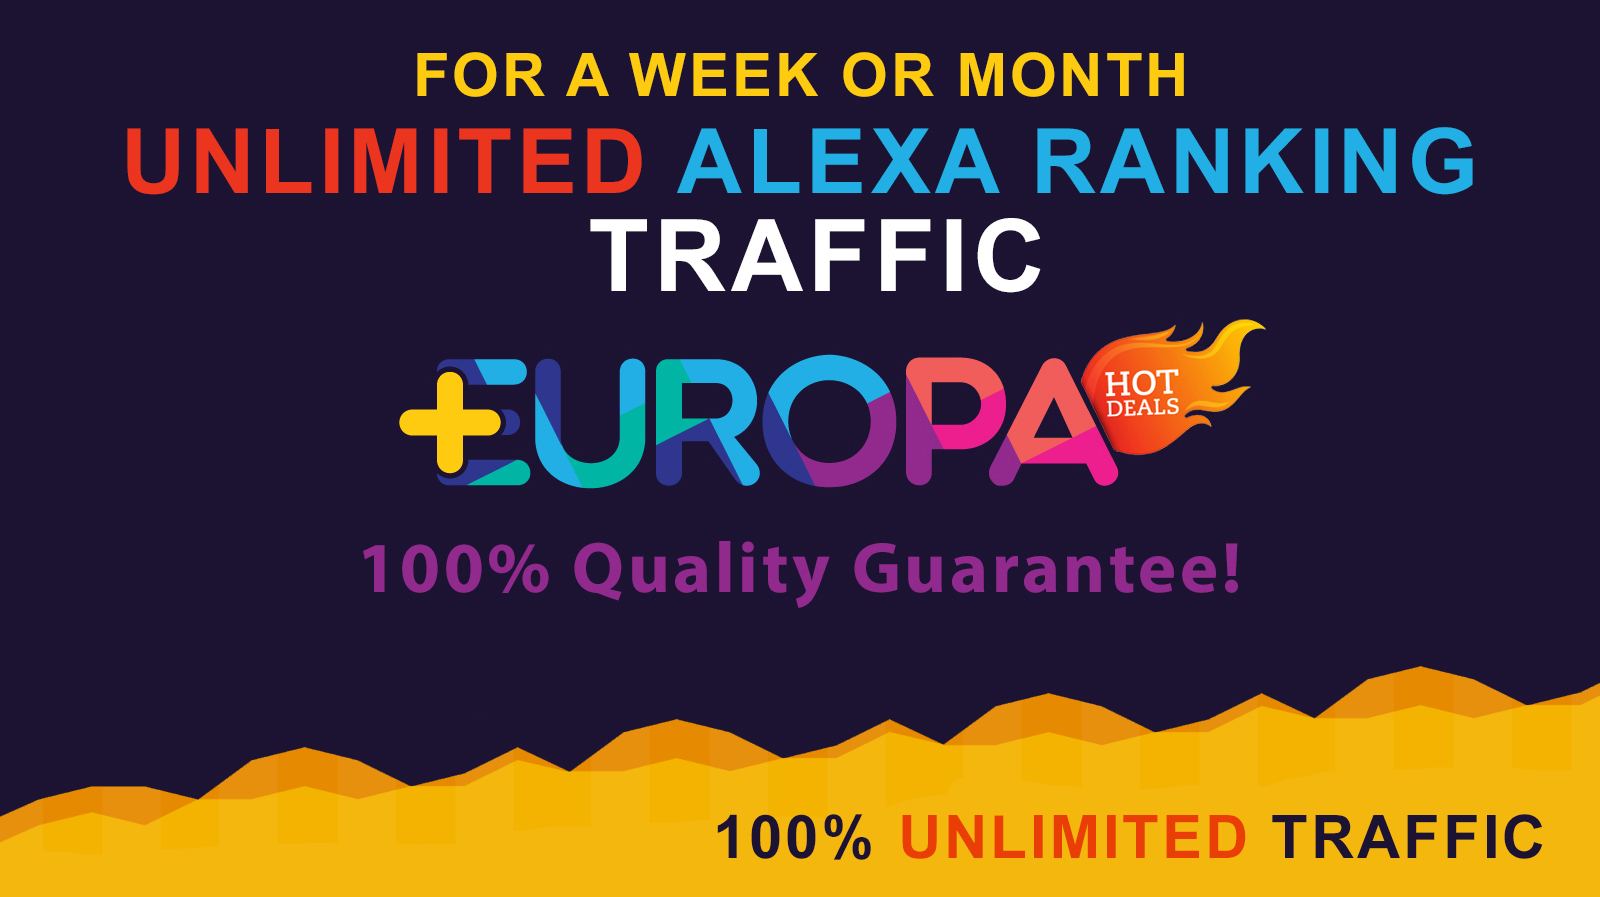 UNLIMITED ALEXA RANKING TRAFFIC FOR A WEEK OR MONTH PLUS BONUS